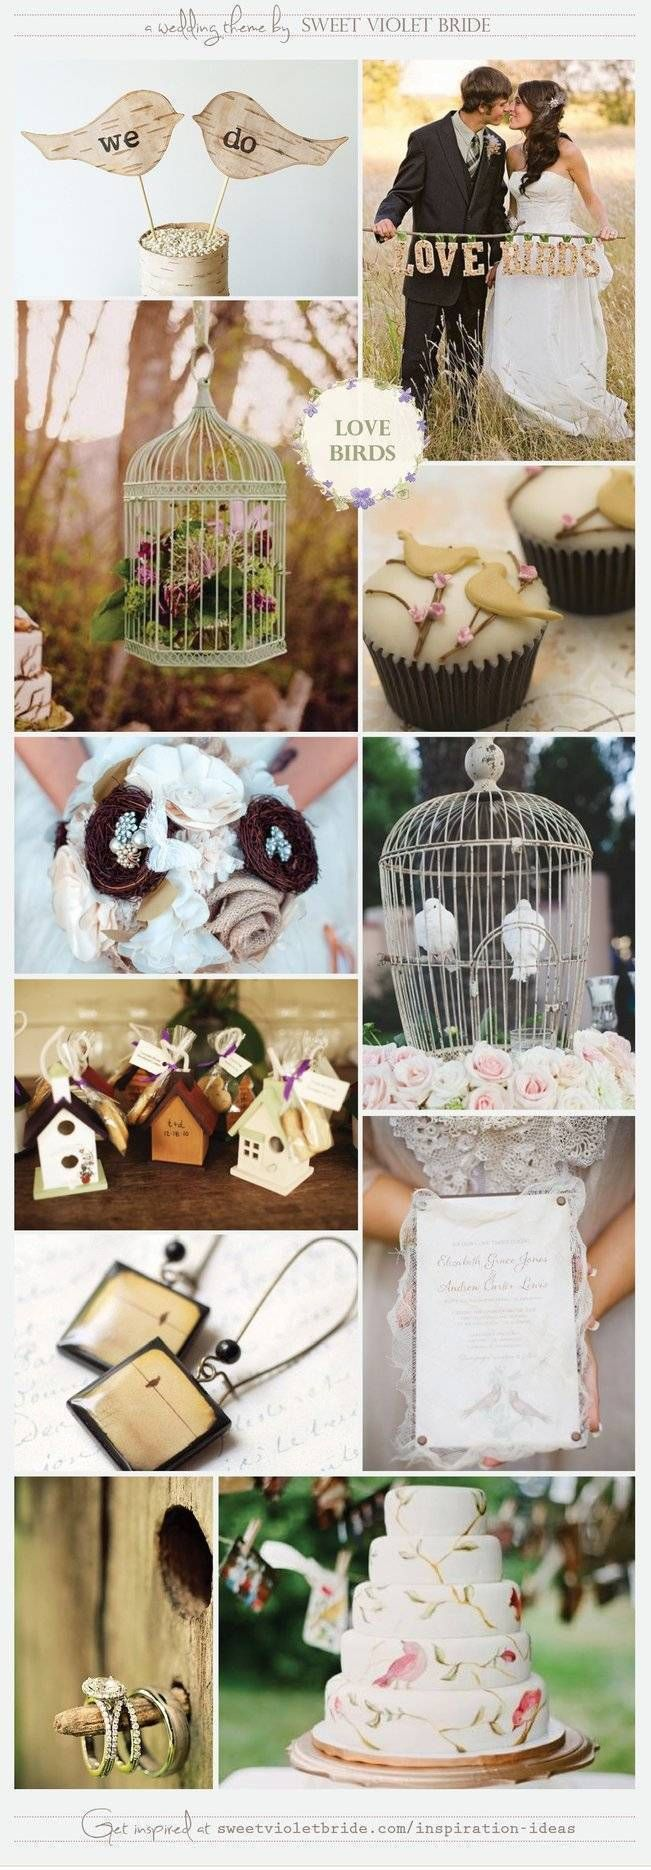 Finding the perfect wedding theme can be both difficult and rewarding. I was inspired to create this inspiration board after meeting a woman who owned a dozen Doves that she released at weddings. Traditionally, Doves are symbols of love and peace...and it doesn't stop there. Lovebird's exhibit strong, monogamous pair bonding and spend hours of time enjoying each others company.